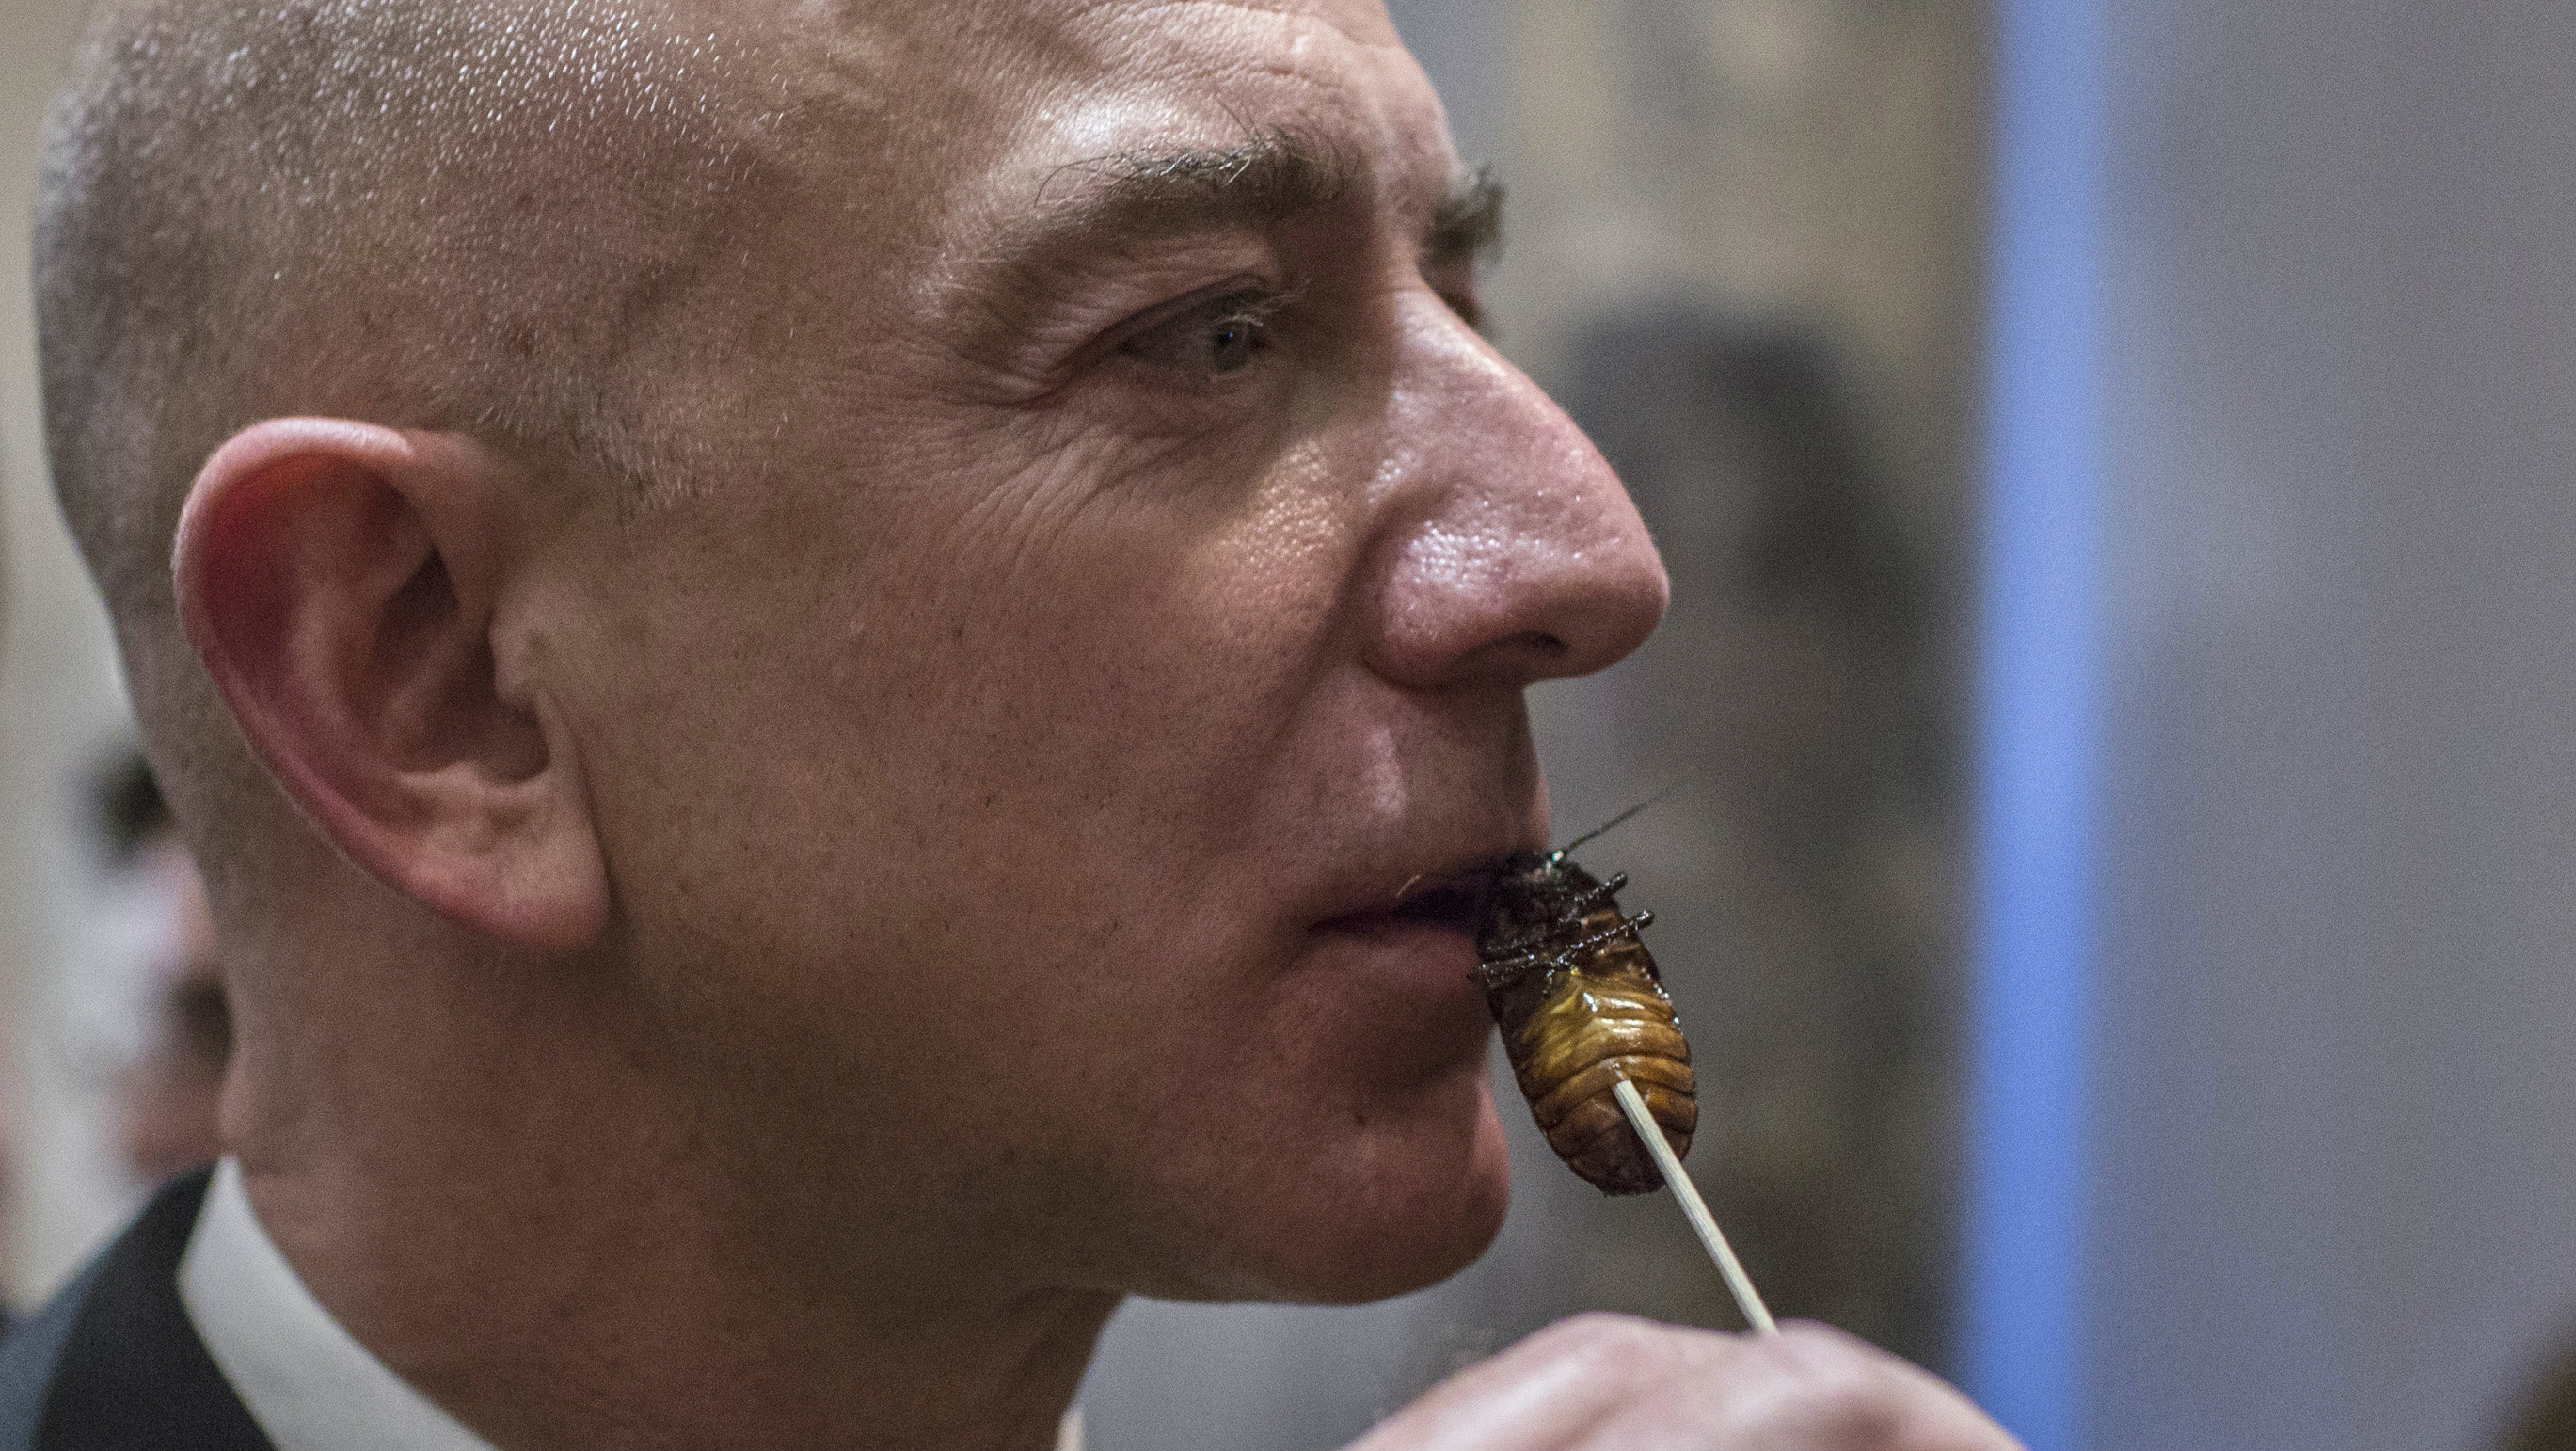 bezos with a cockroach lollipop